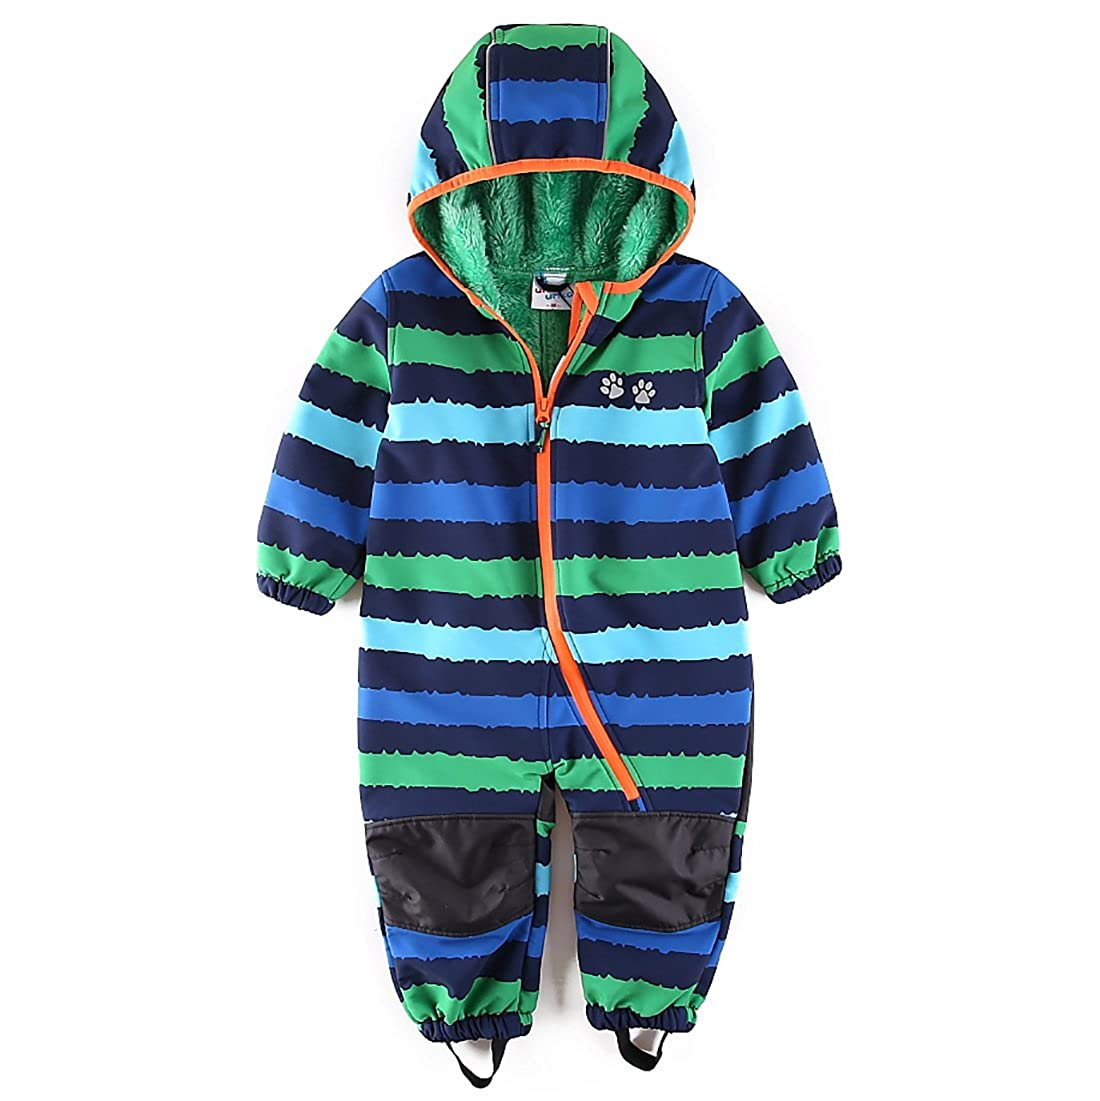 umkaumka Baby Boy Waterproof Coverall All in One Fleece Lining Pramsuit Muddy Play